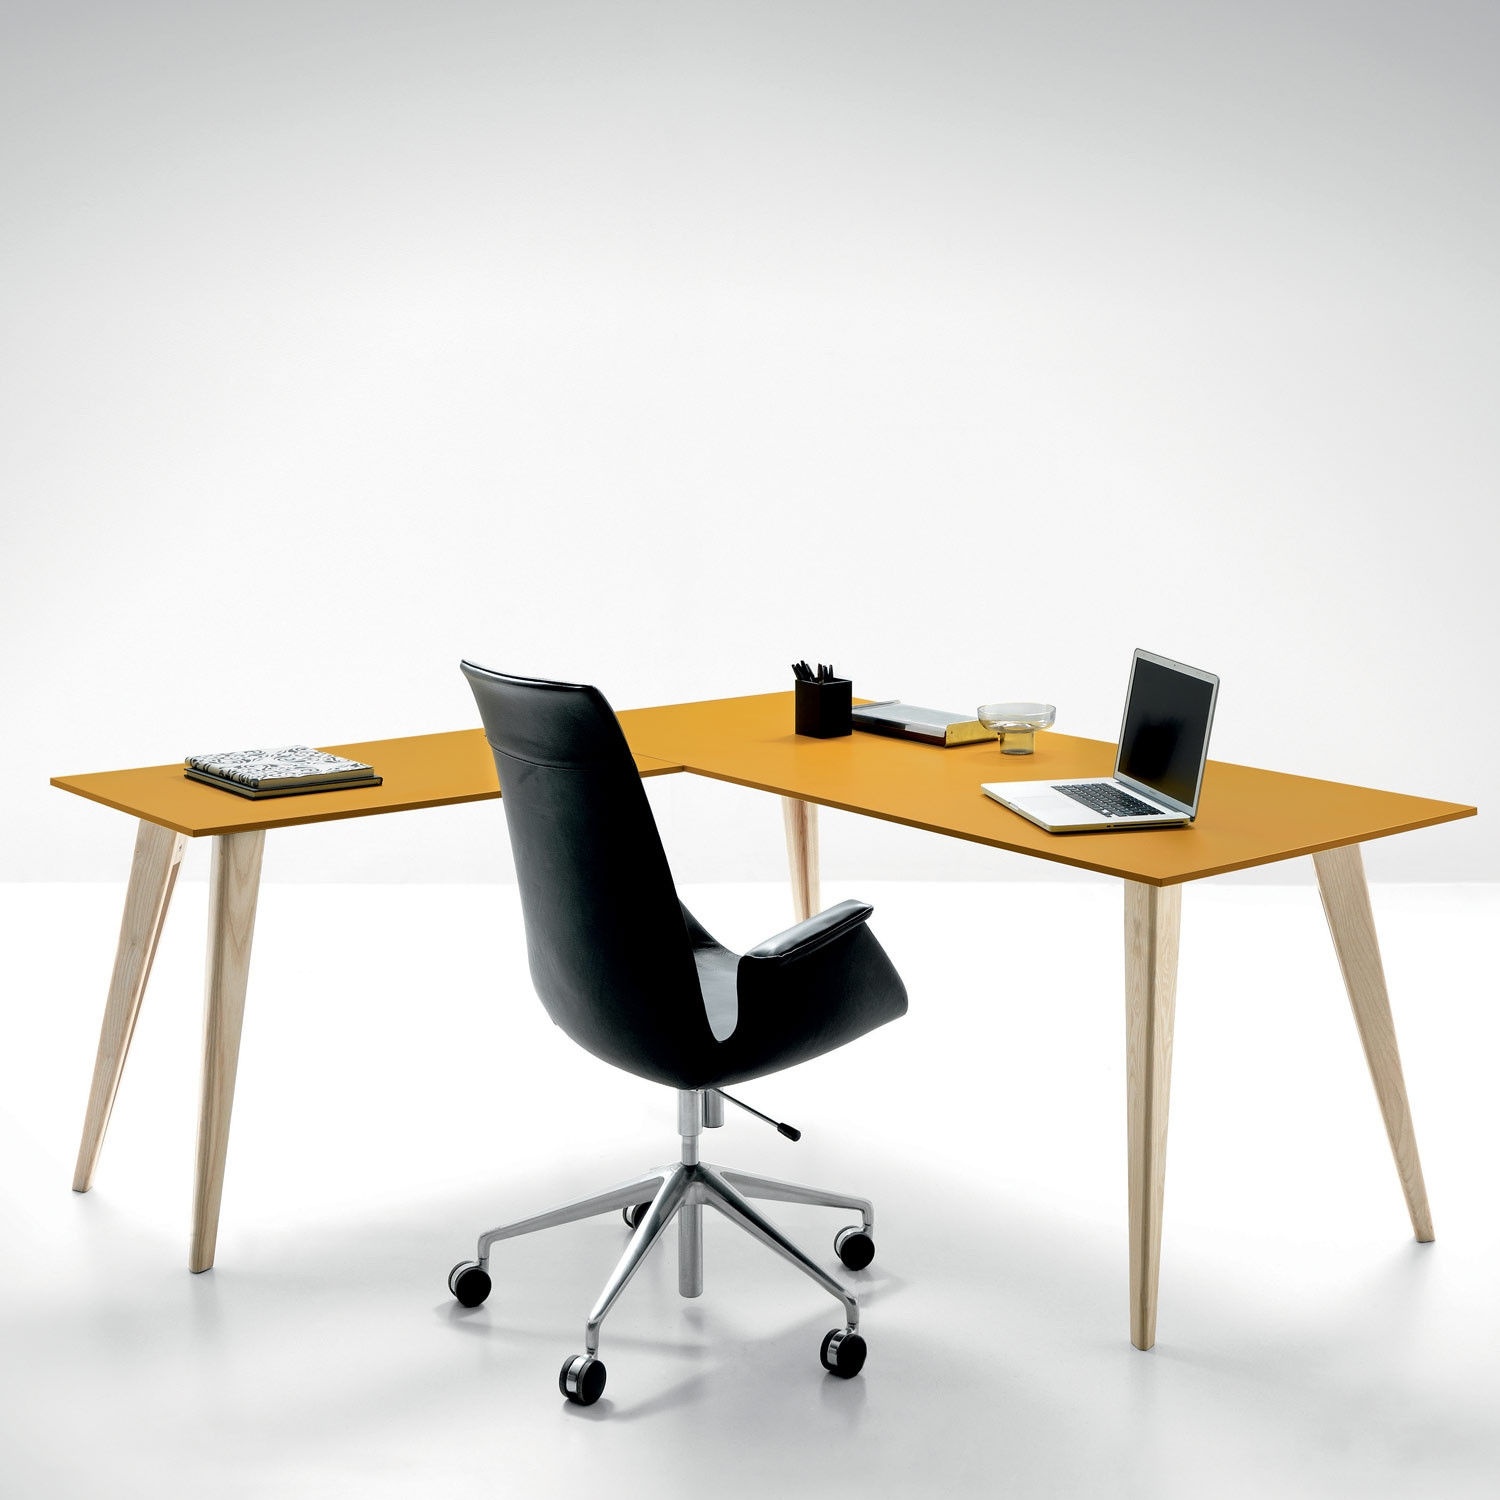 Pigreco Cellular office Desk